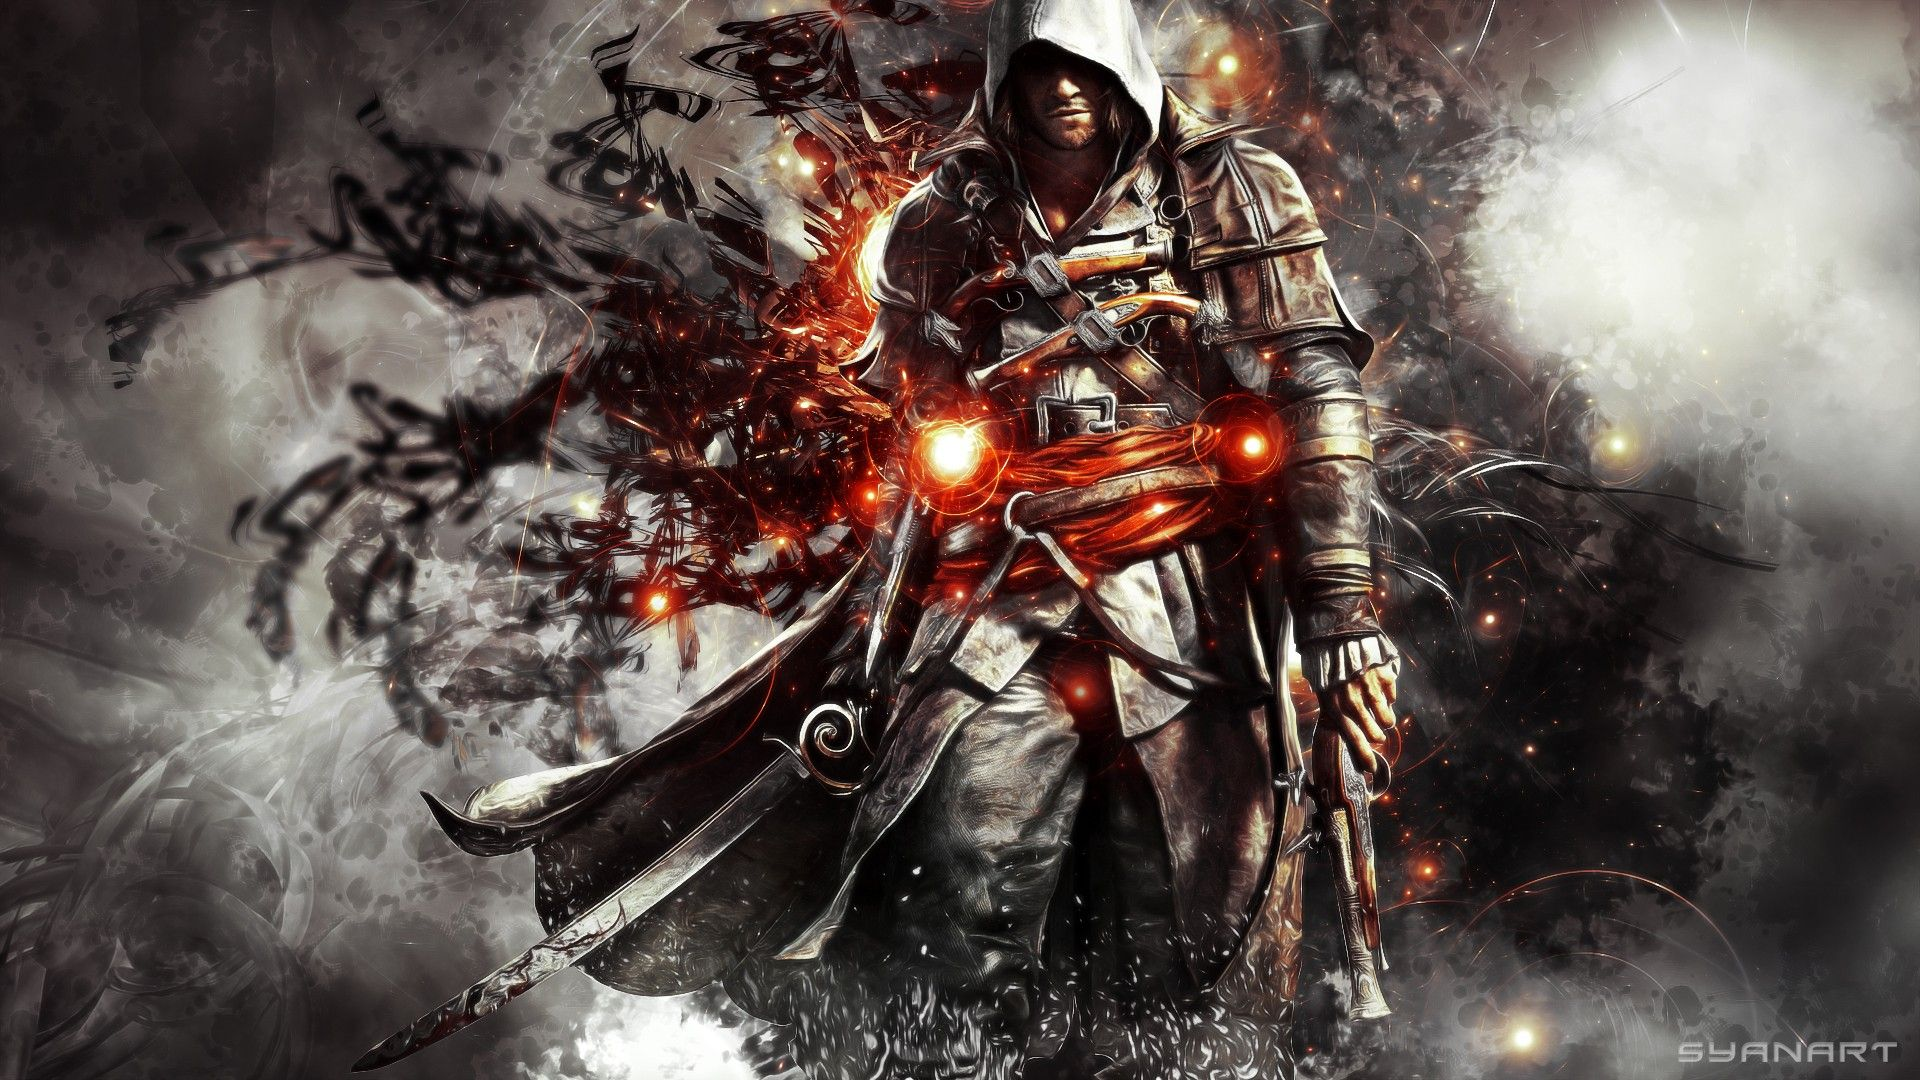 assassin creed warpaper 1000+ images about assassin creed wallpaper on Pinterest | Assassins creed, Wallpapers and Assassins creed unity